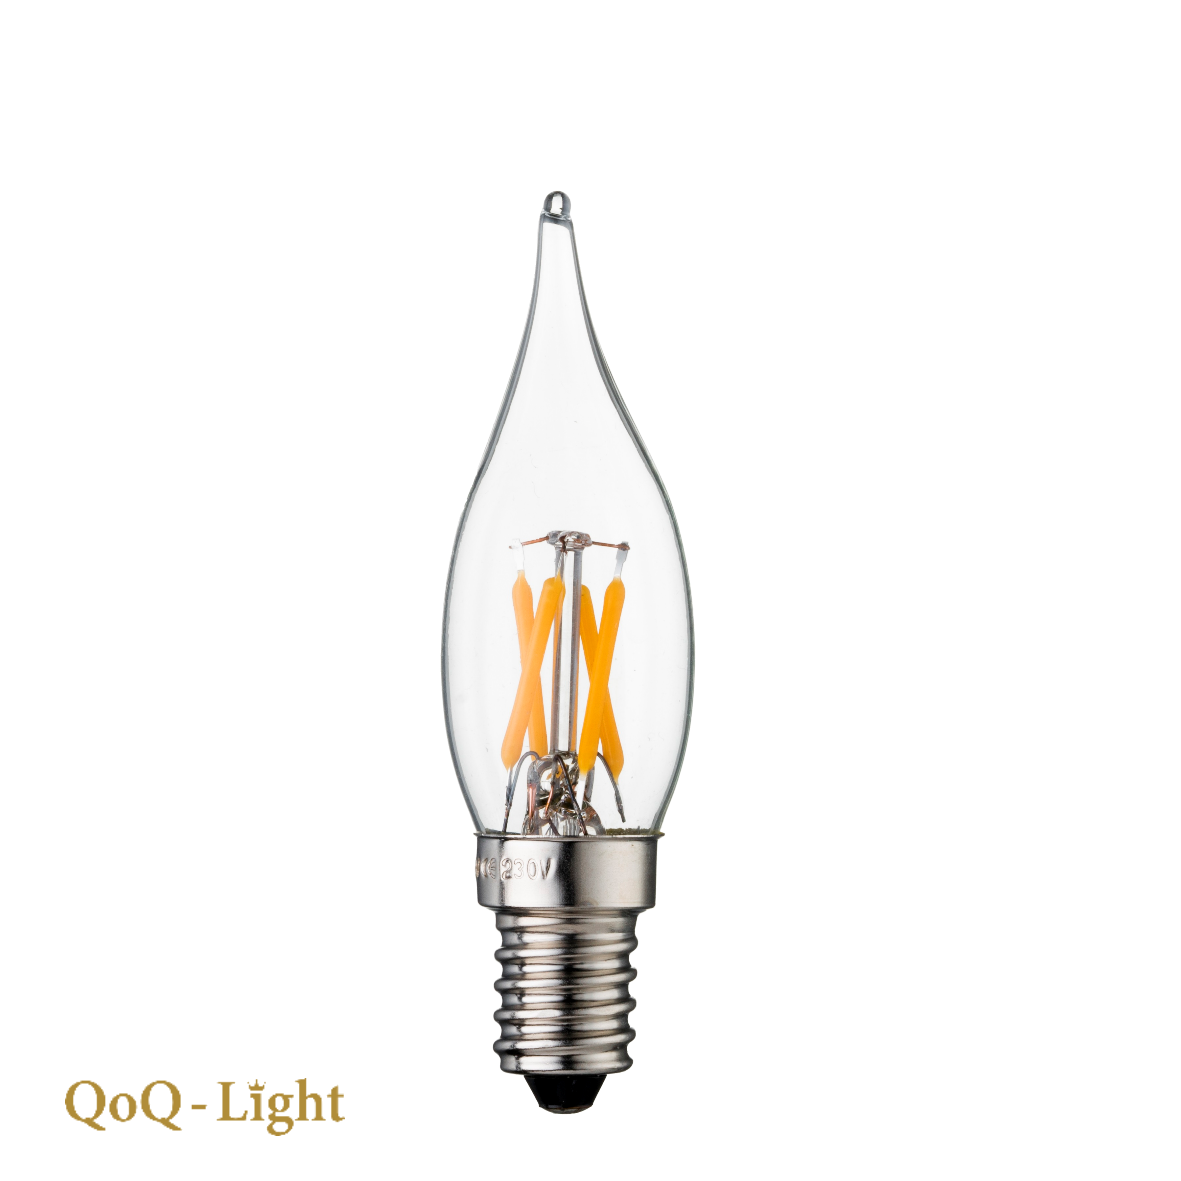 QOQ-Light Paleiskaars C24 Led 2 watt, Warmwit